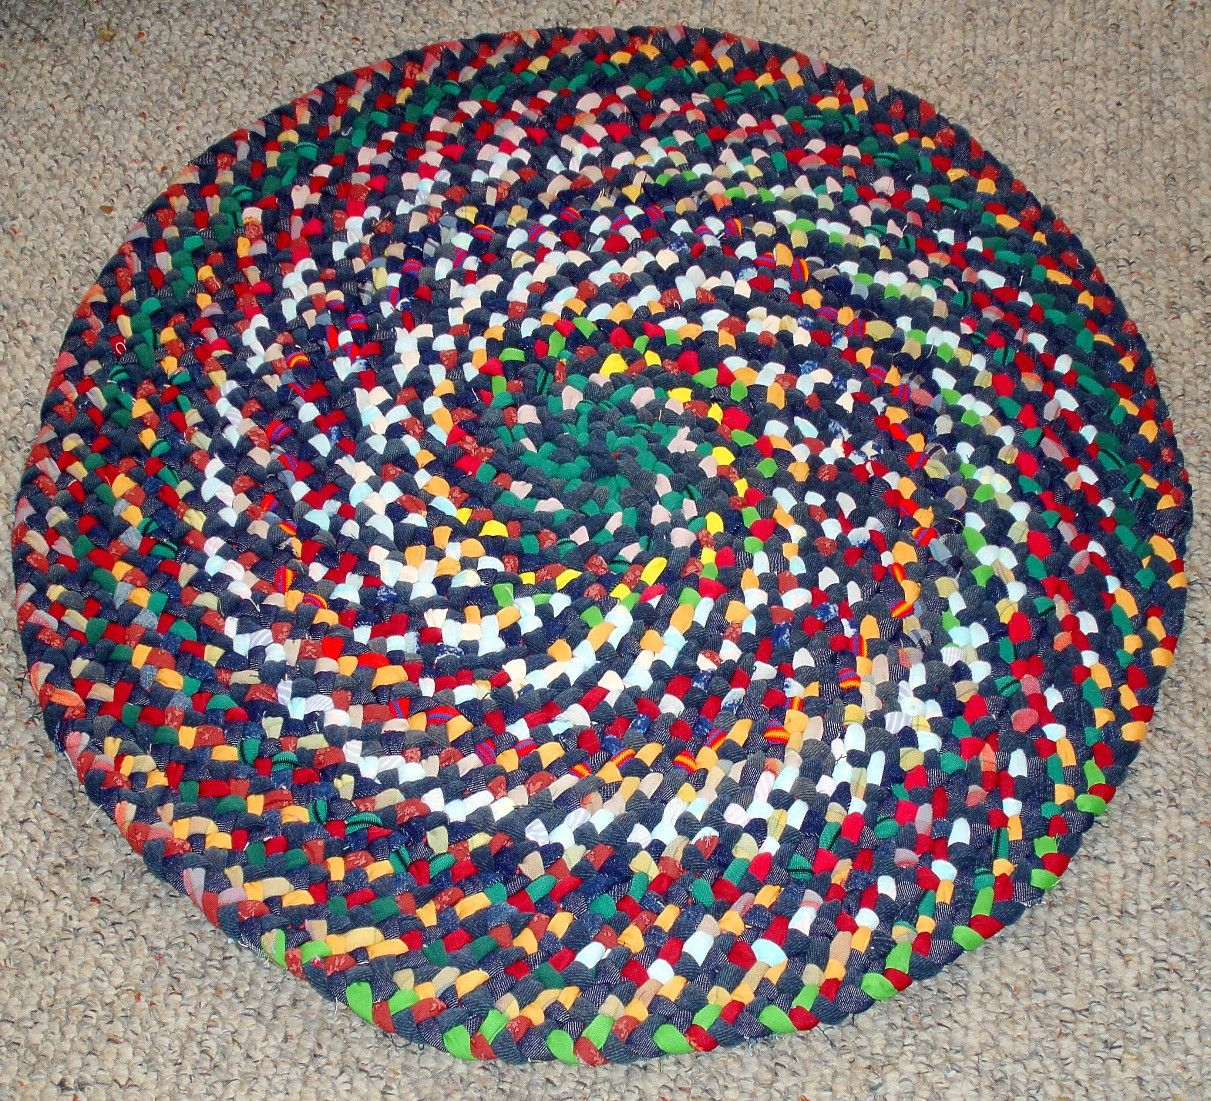 30 In Round Braided Rug From Repurposed Jeans Cotton Reds Etsy Round Braided Rug Rag Rug Colorful Rugs